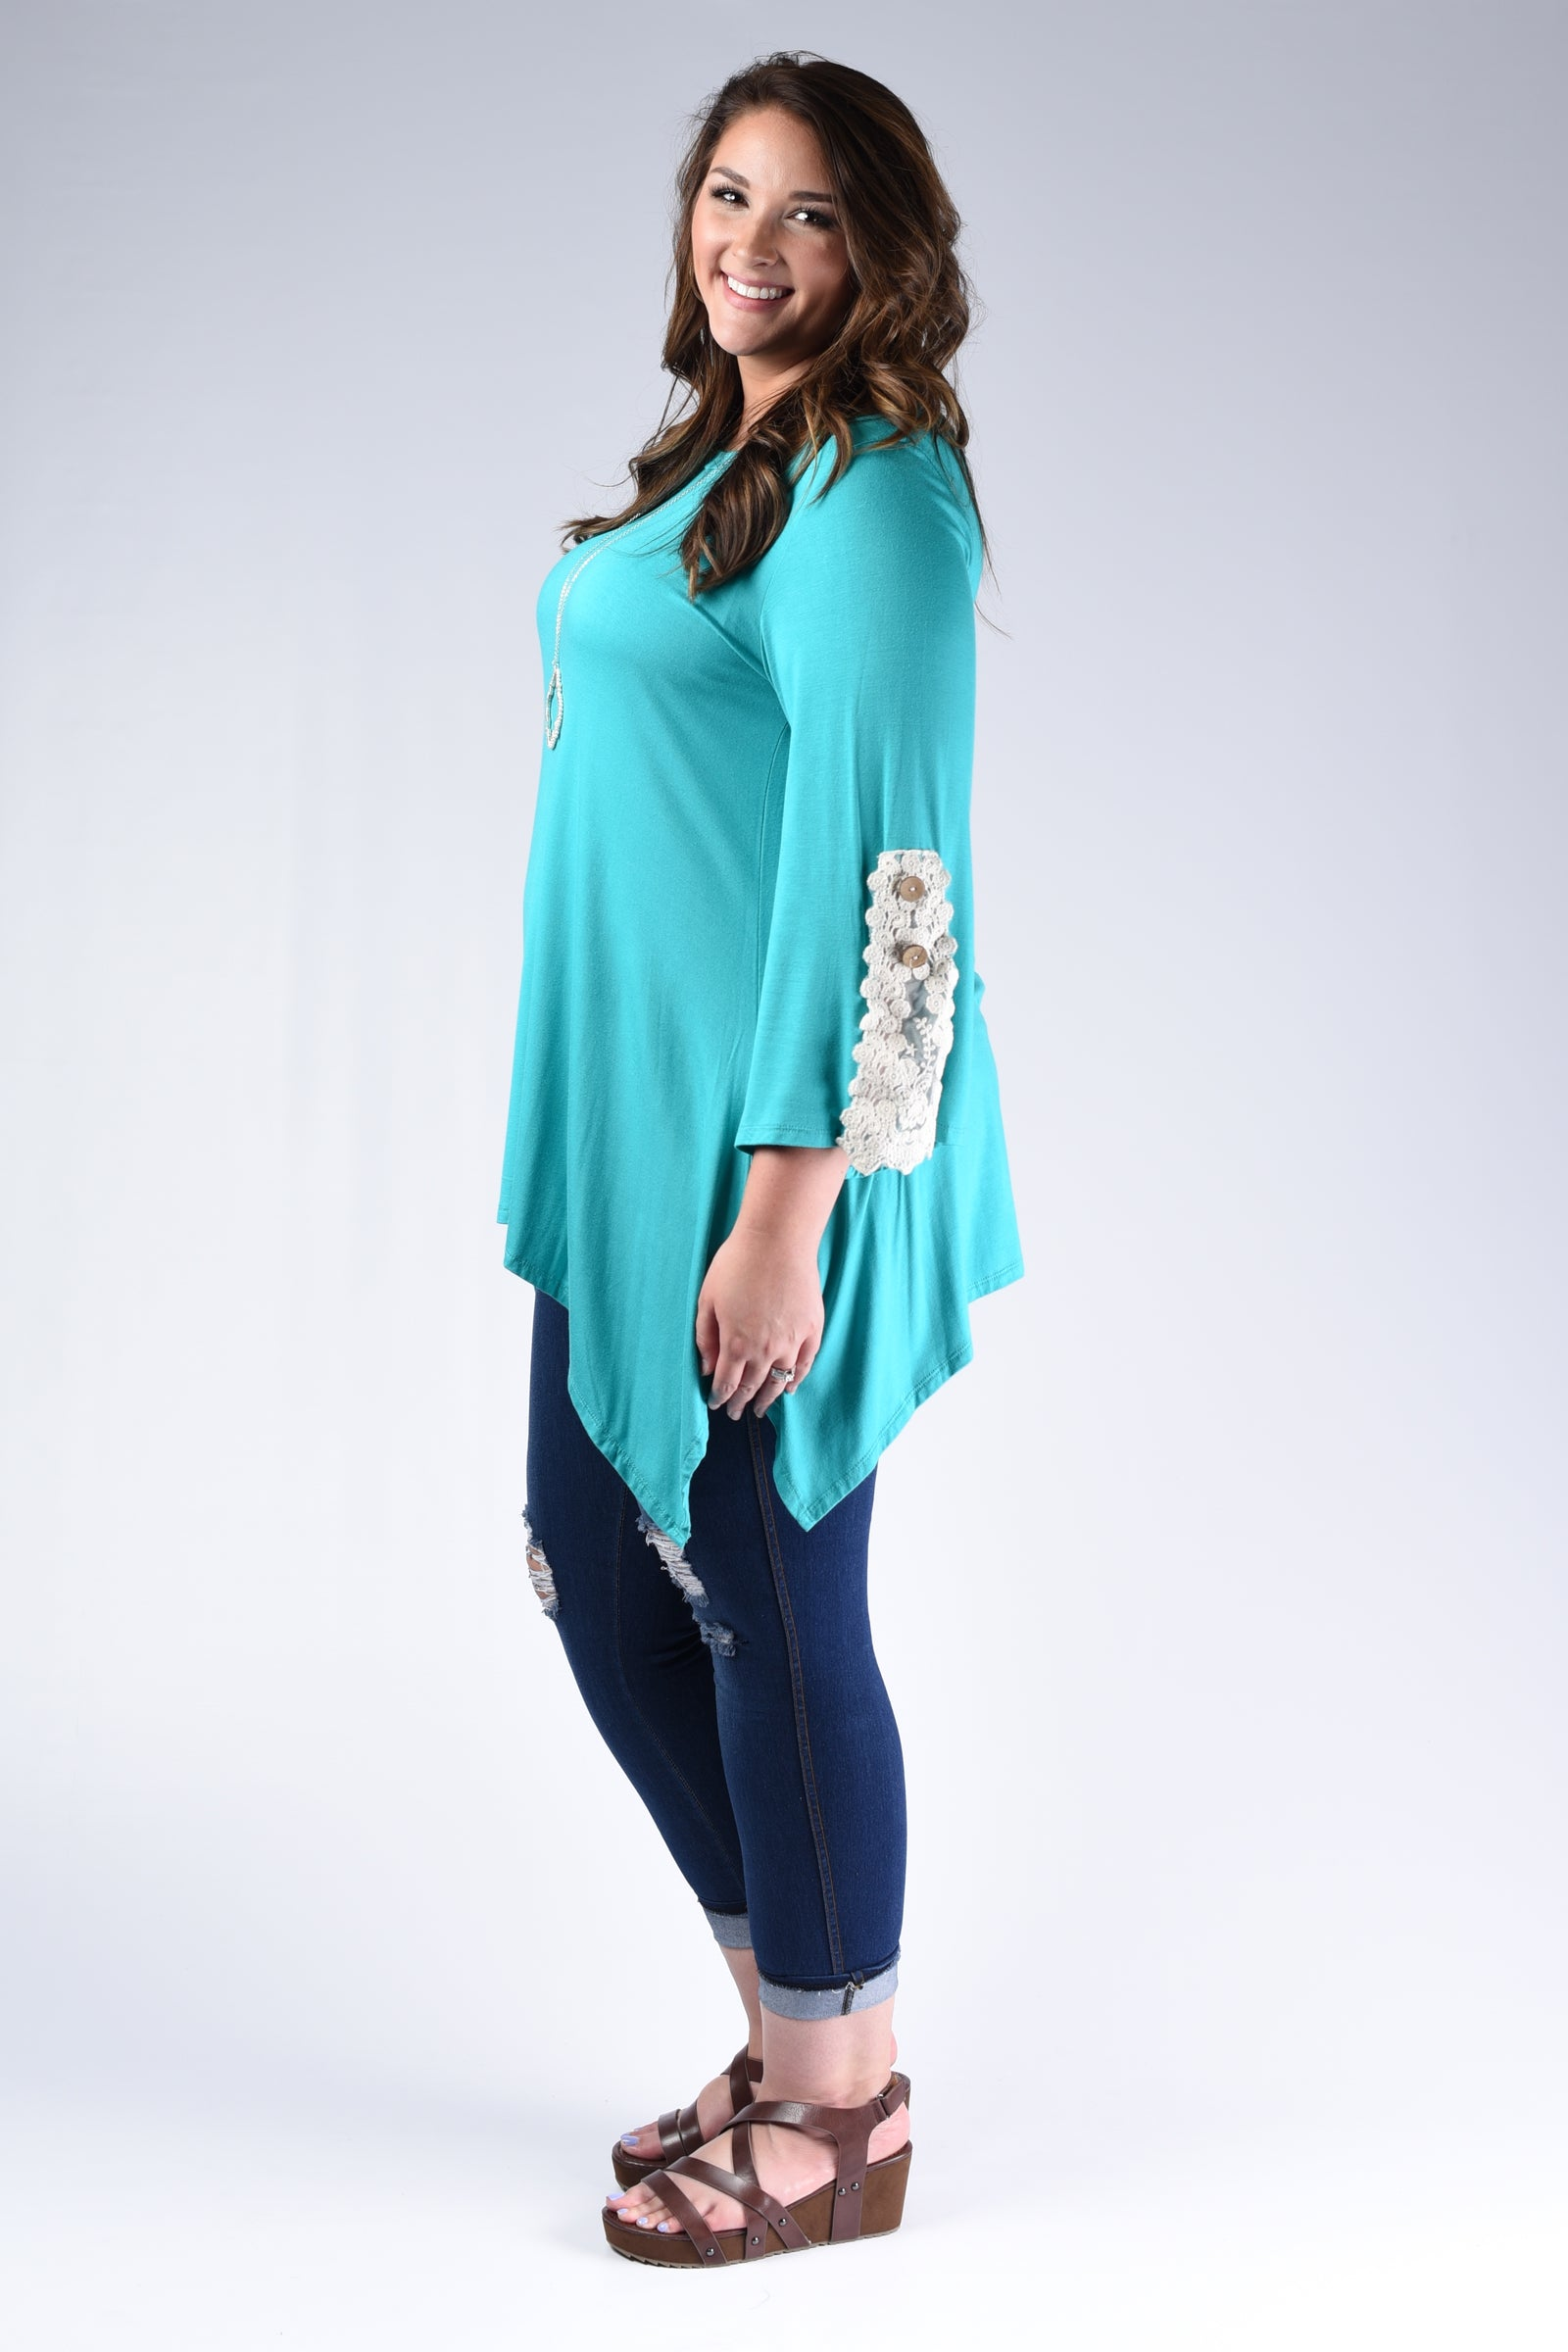 Mint Crochet Cuff Tunic Top - www.mycurvystore.com - Curvy Boutique - Plus Size